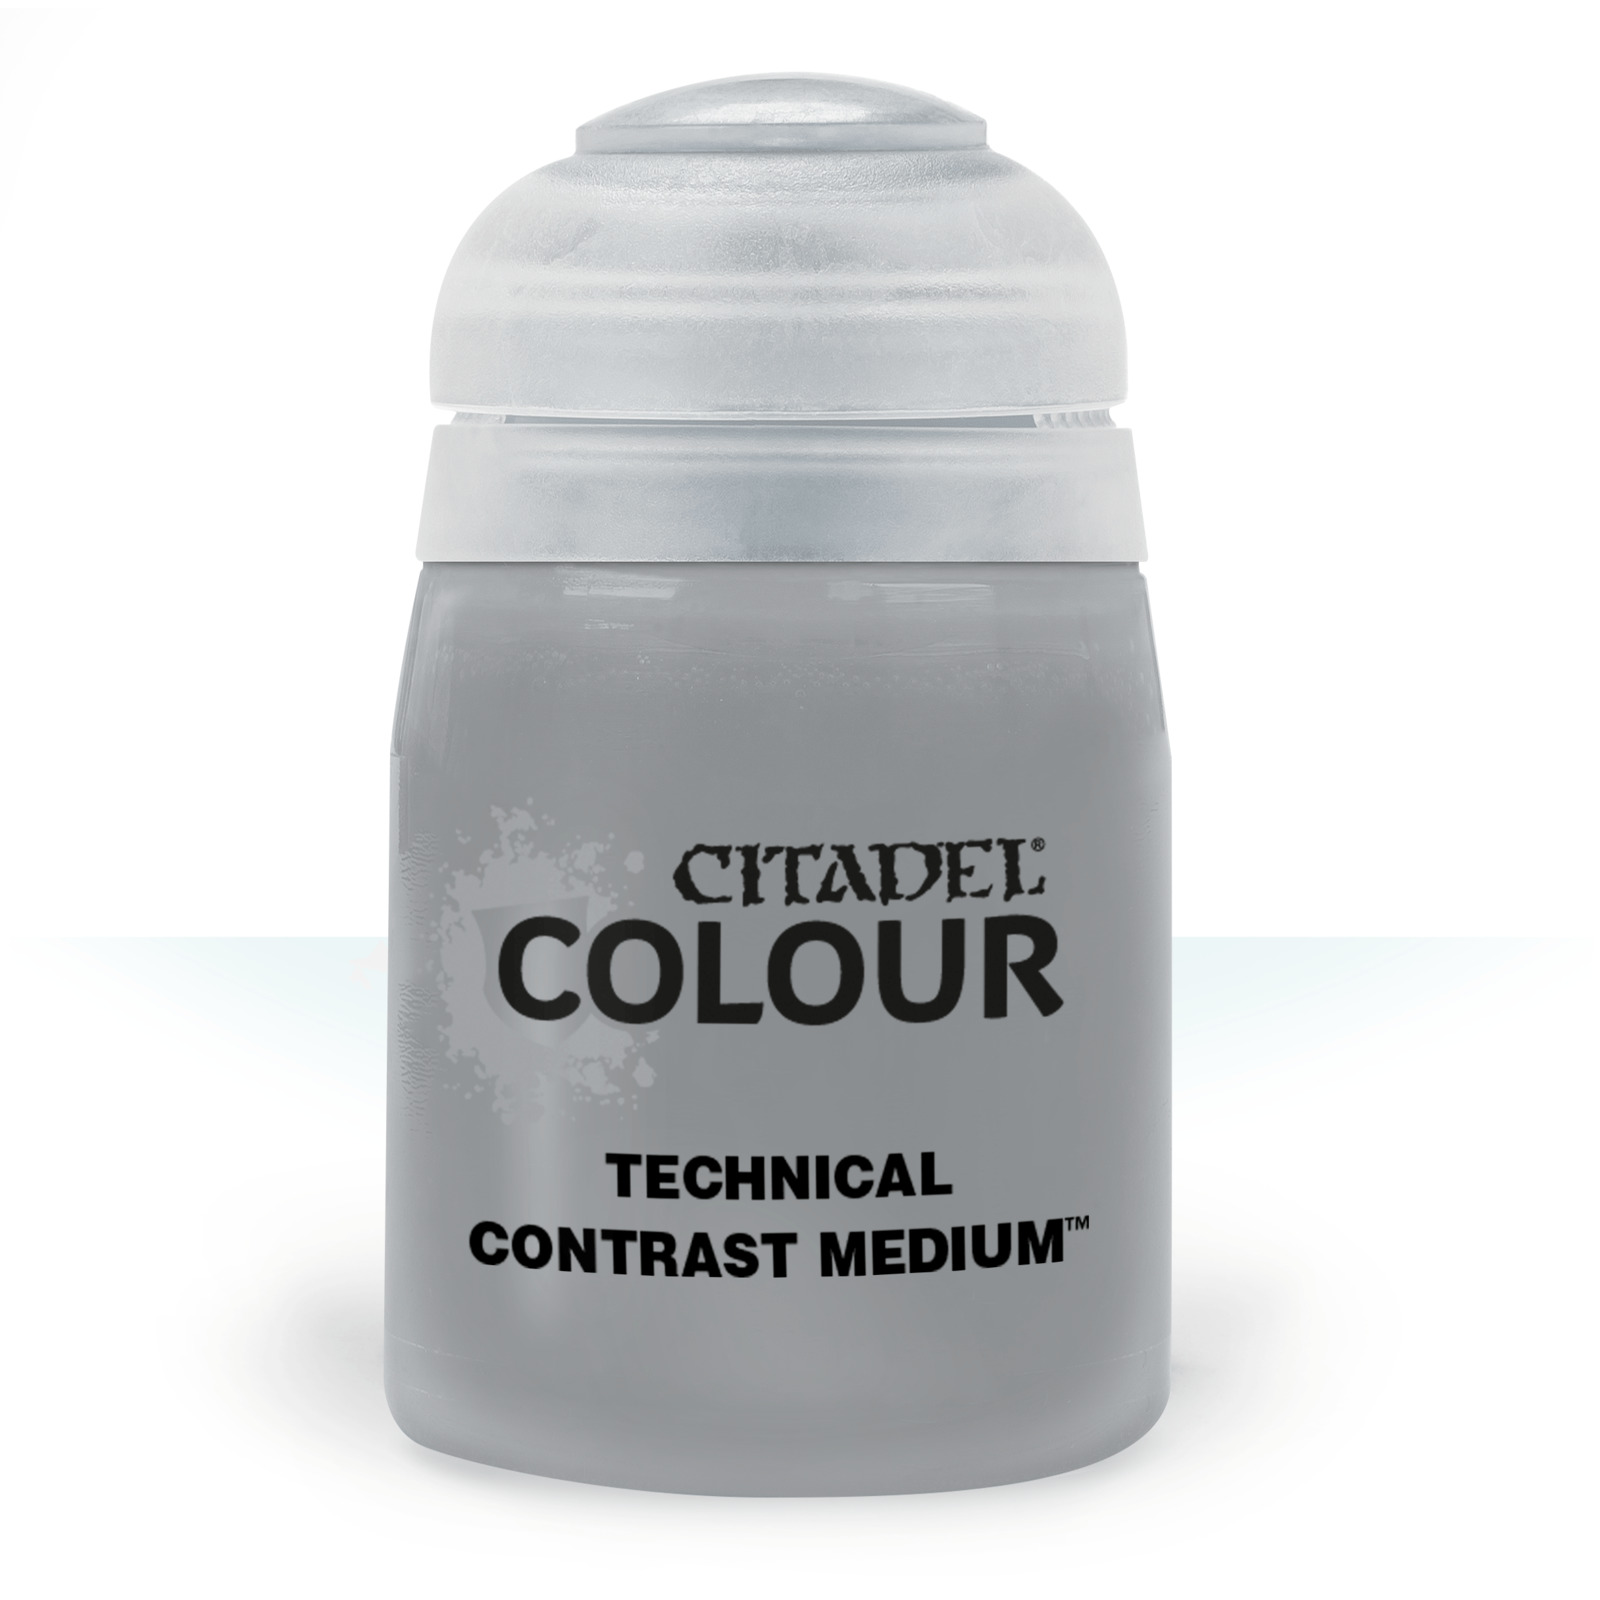 Citadel Technical: Contrast Medium (24ml) image